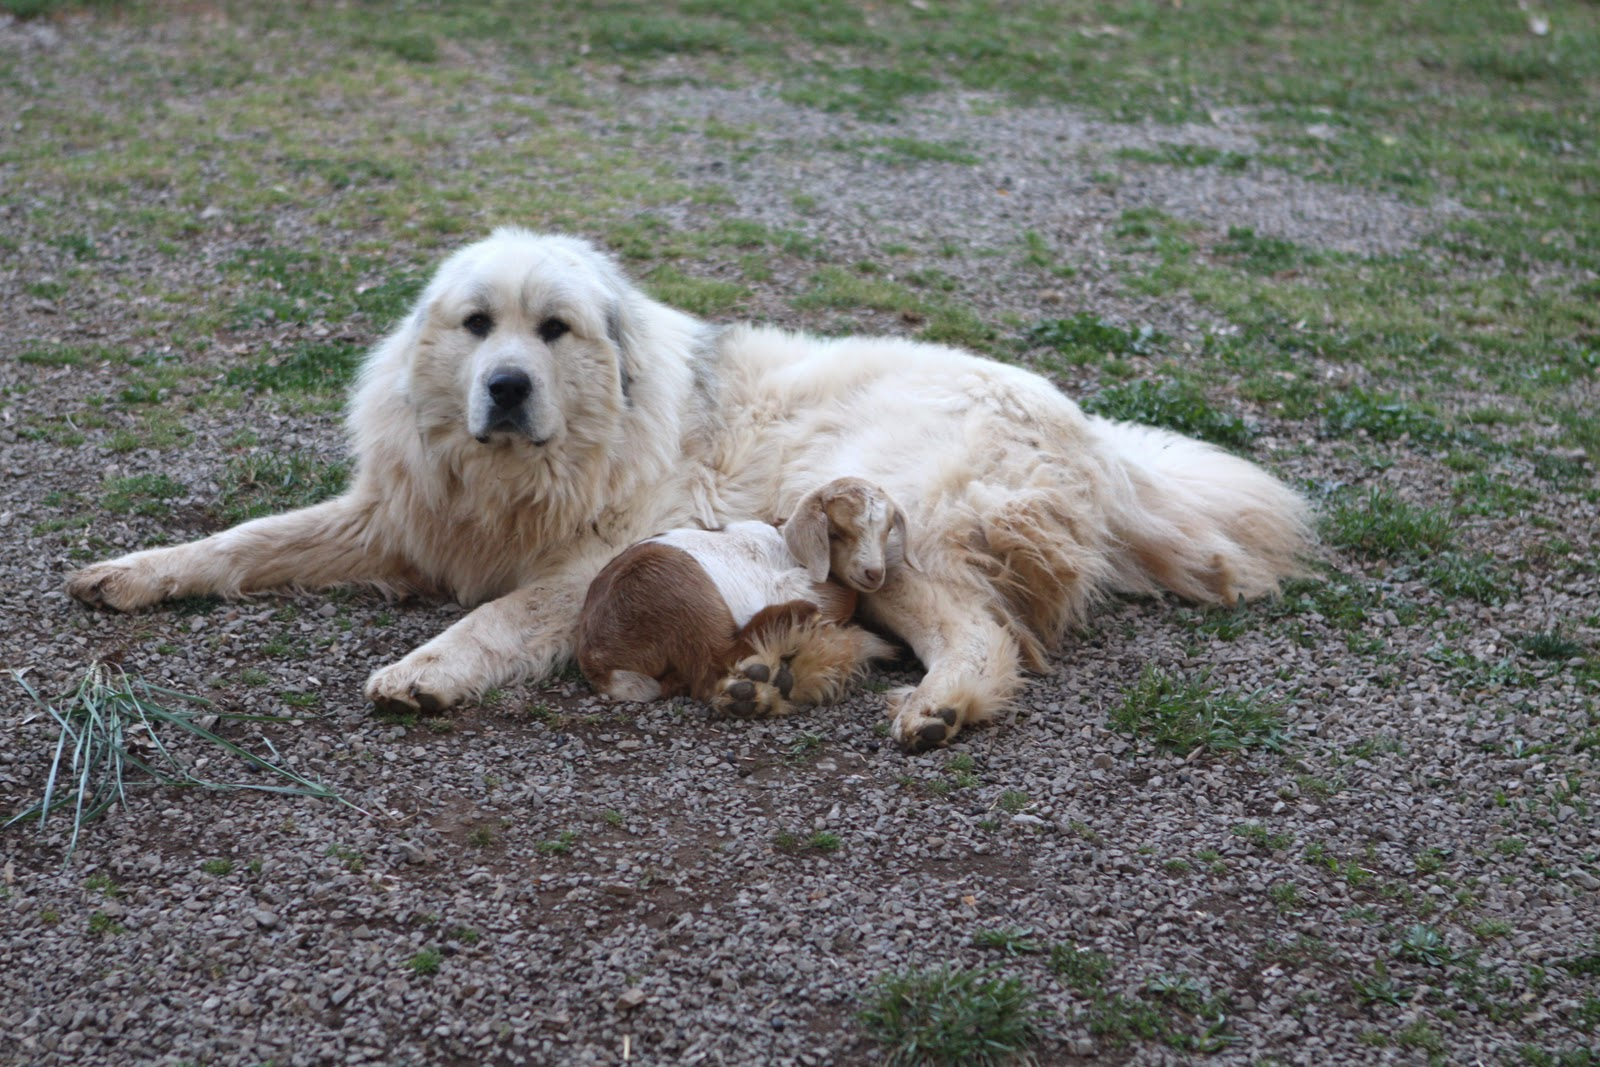 Hilltop Guardian Great Pyrenees: Our Dogs